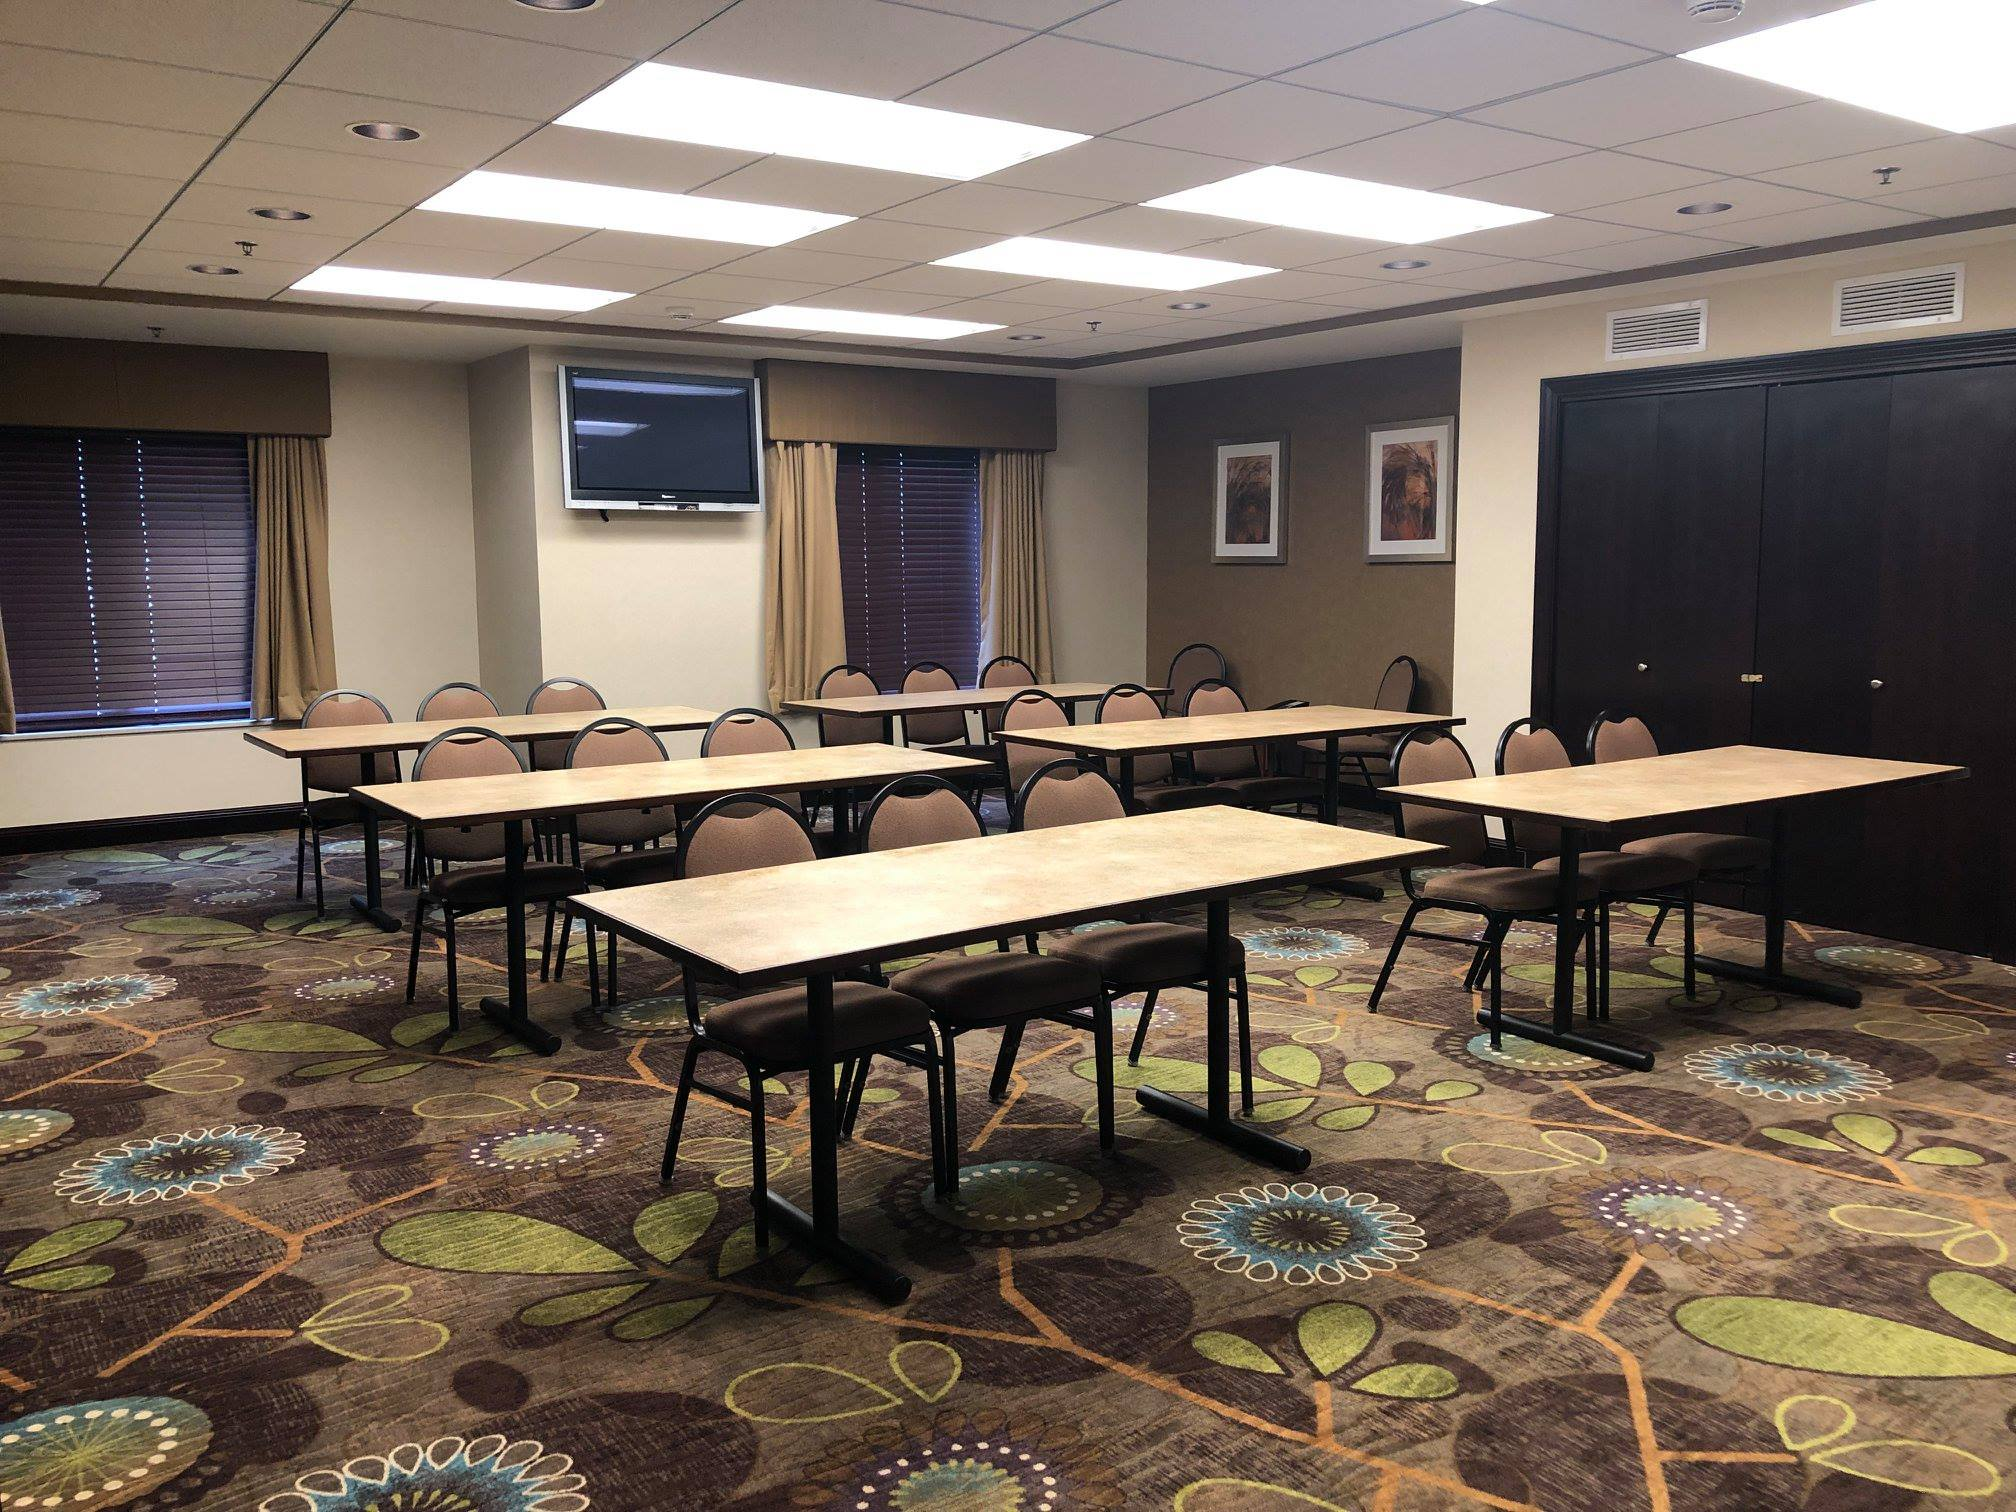 Holiday Inn Express meeting space 2